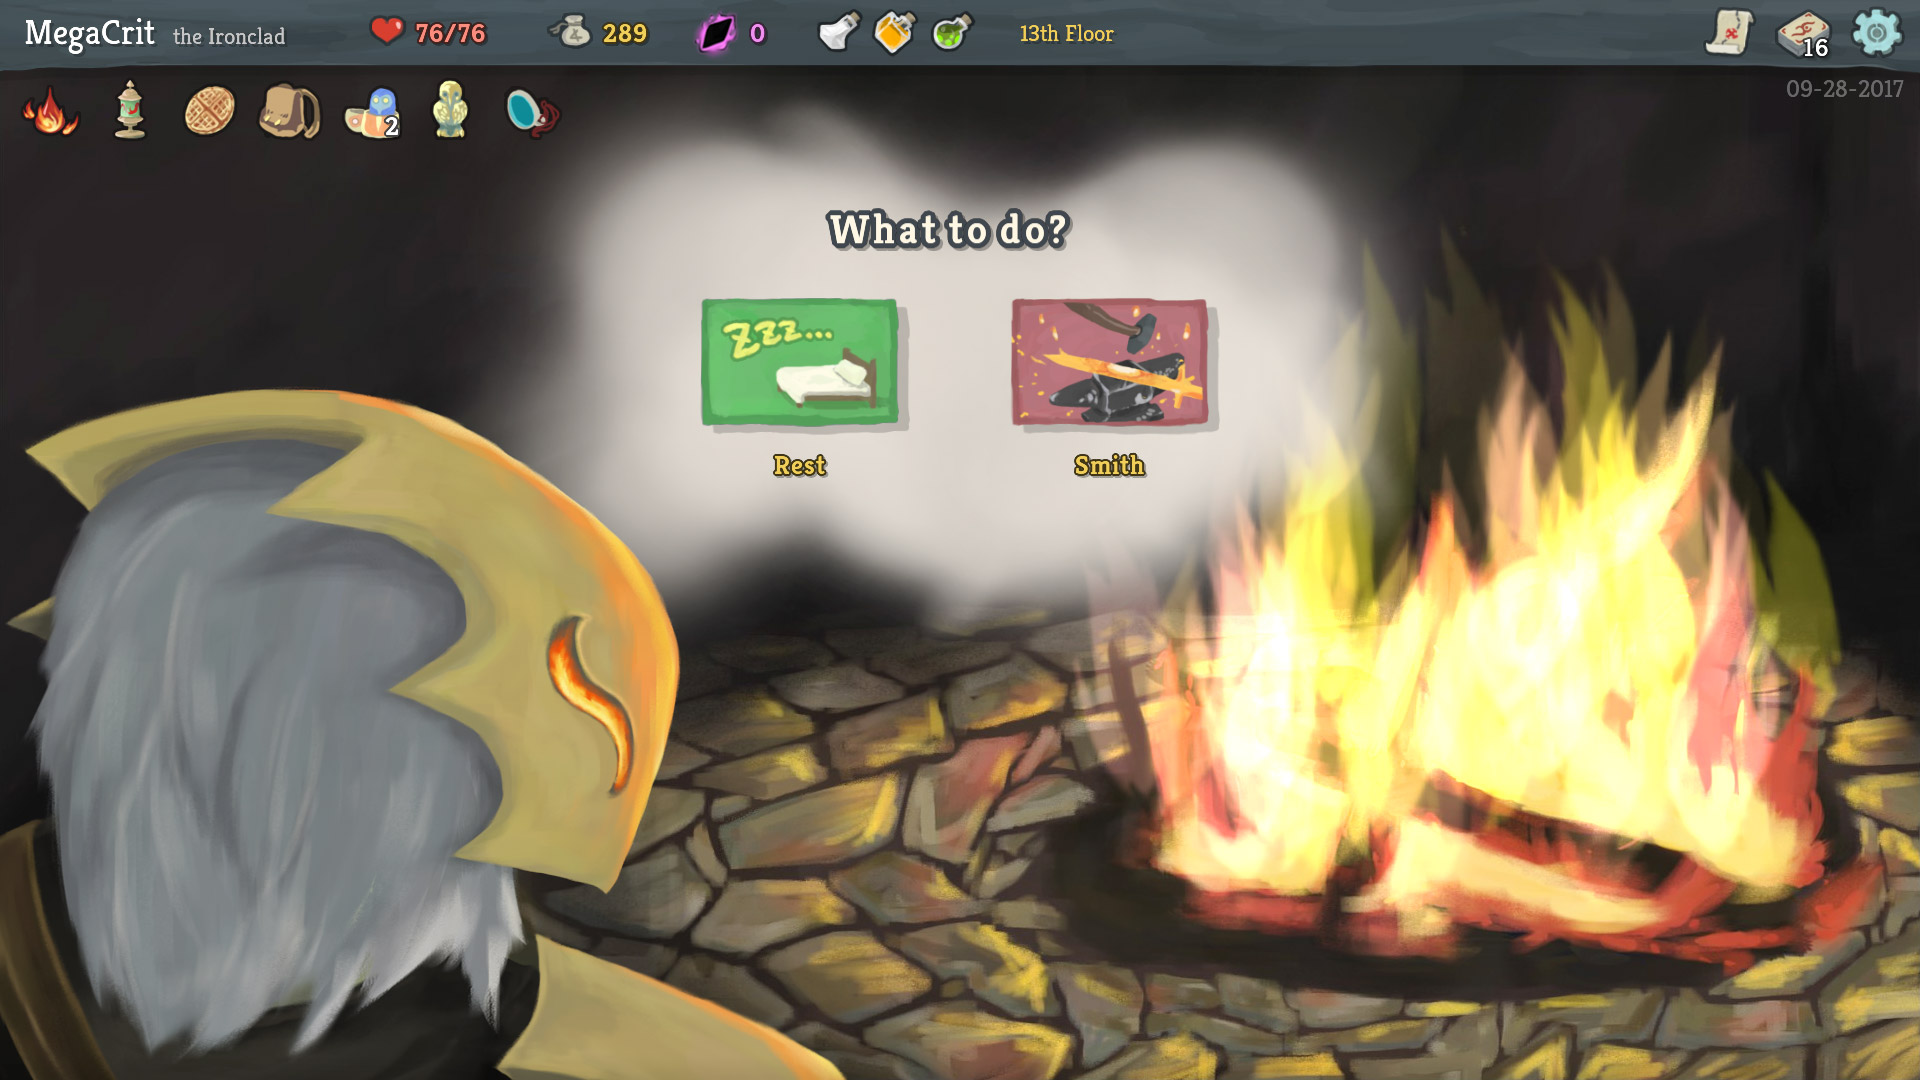 You can choose to rest (heal) or smith (upgrade a card) at campfires. Other options show up based on relics you find.